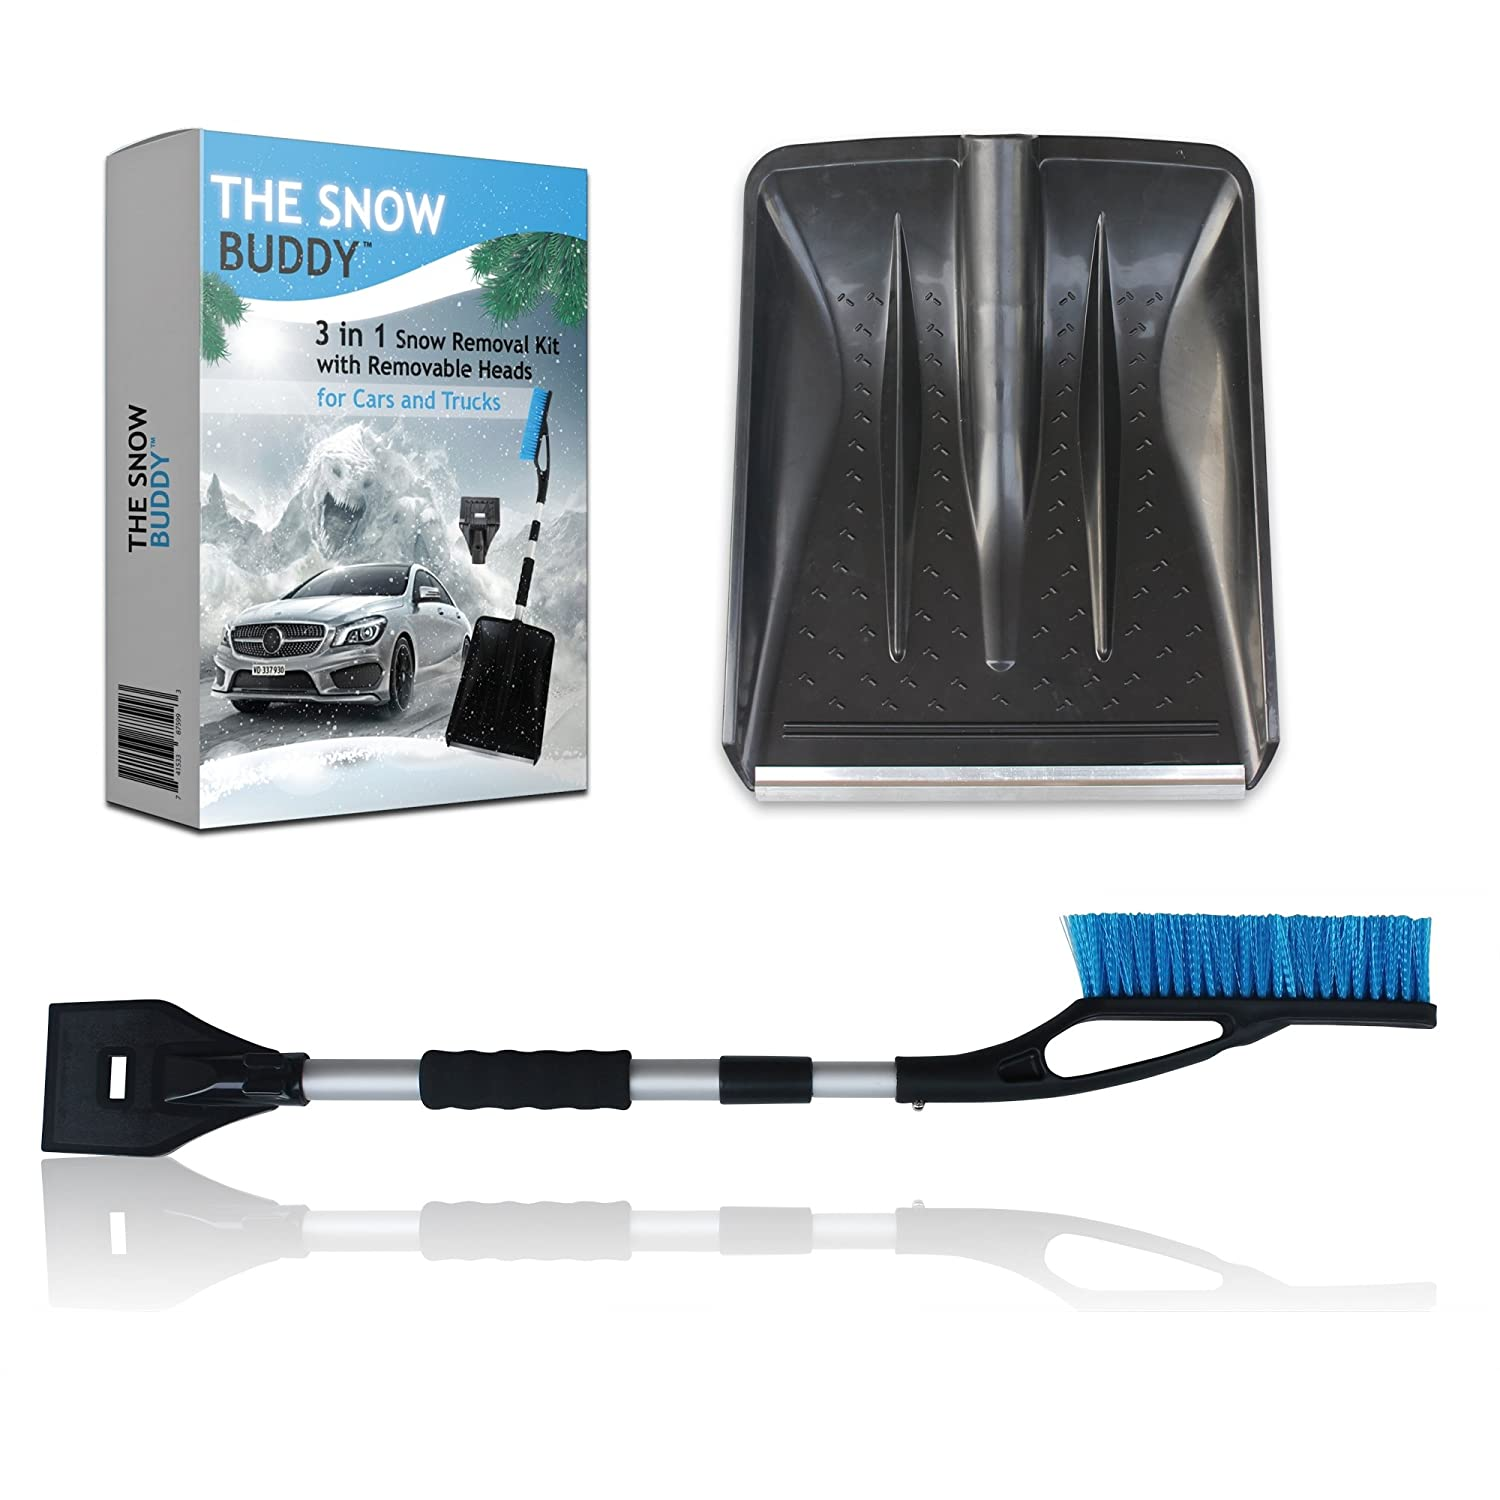 Amazon.com: Snow Buddy 3-in-1 Snow Removal Kit for Cars and Trucks ...